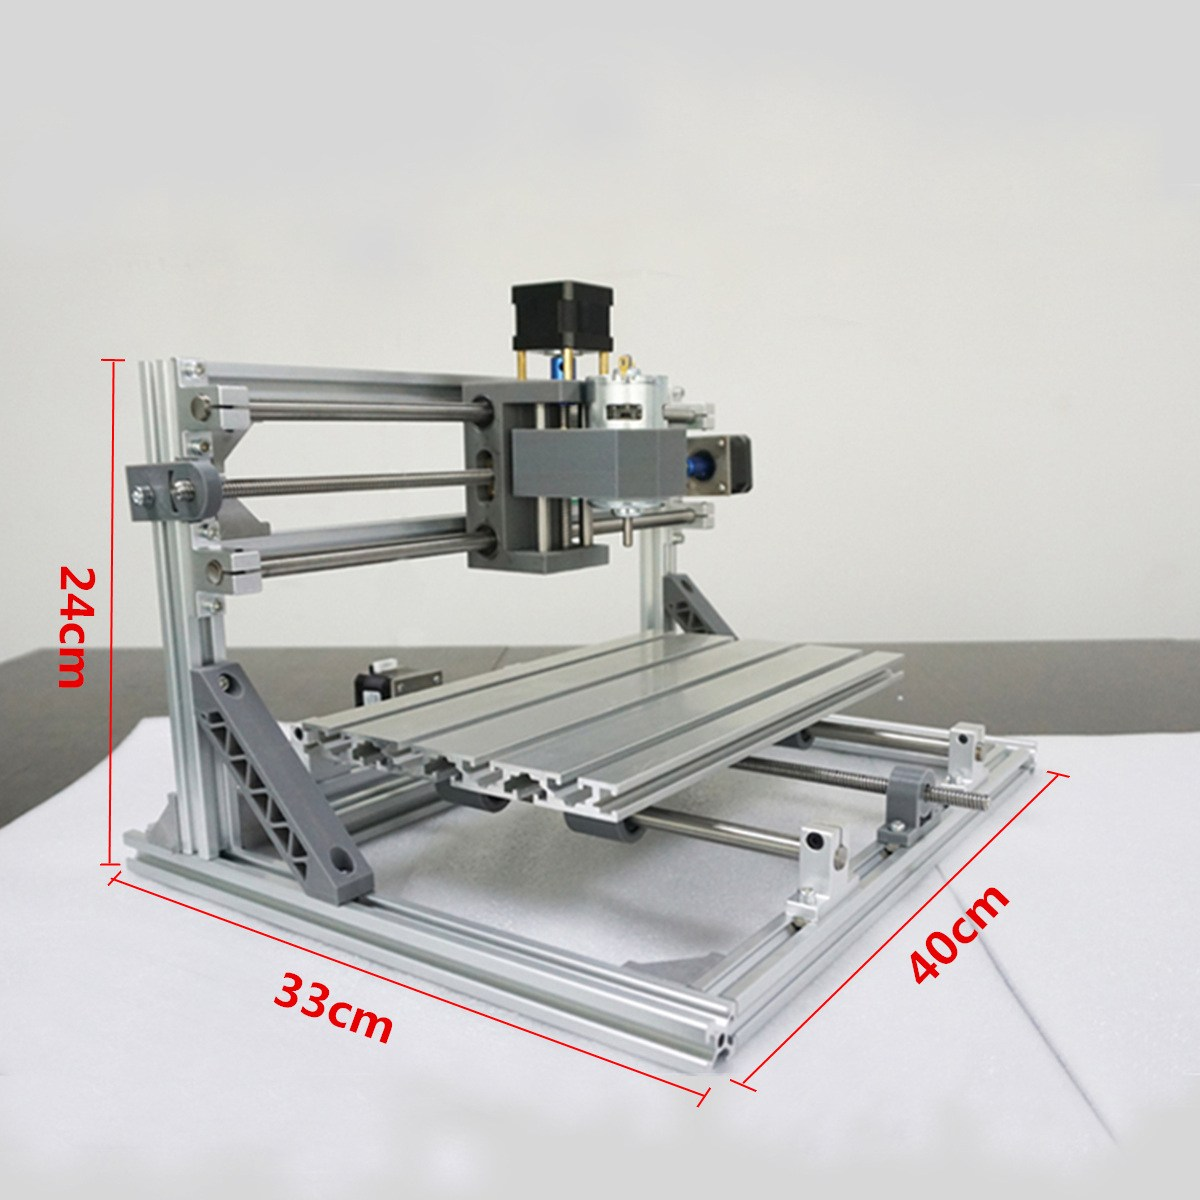 DIY 3018 CNC Router ER11 GRBL Control Diy CNC Machine,3 Axis PCB Milling Machine,Wood Router Laser Engraving cnc3018 er11 diy cnc engraving machine pcb milling machine wood router laser engraving grbl control cnc 3018 best toys gifts